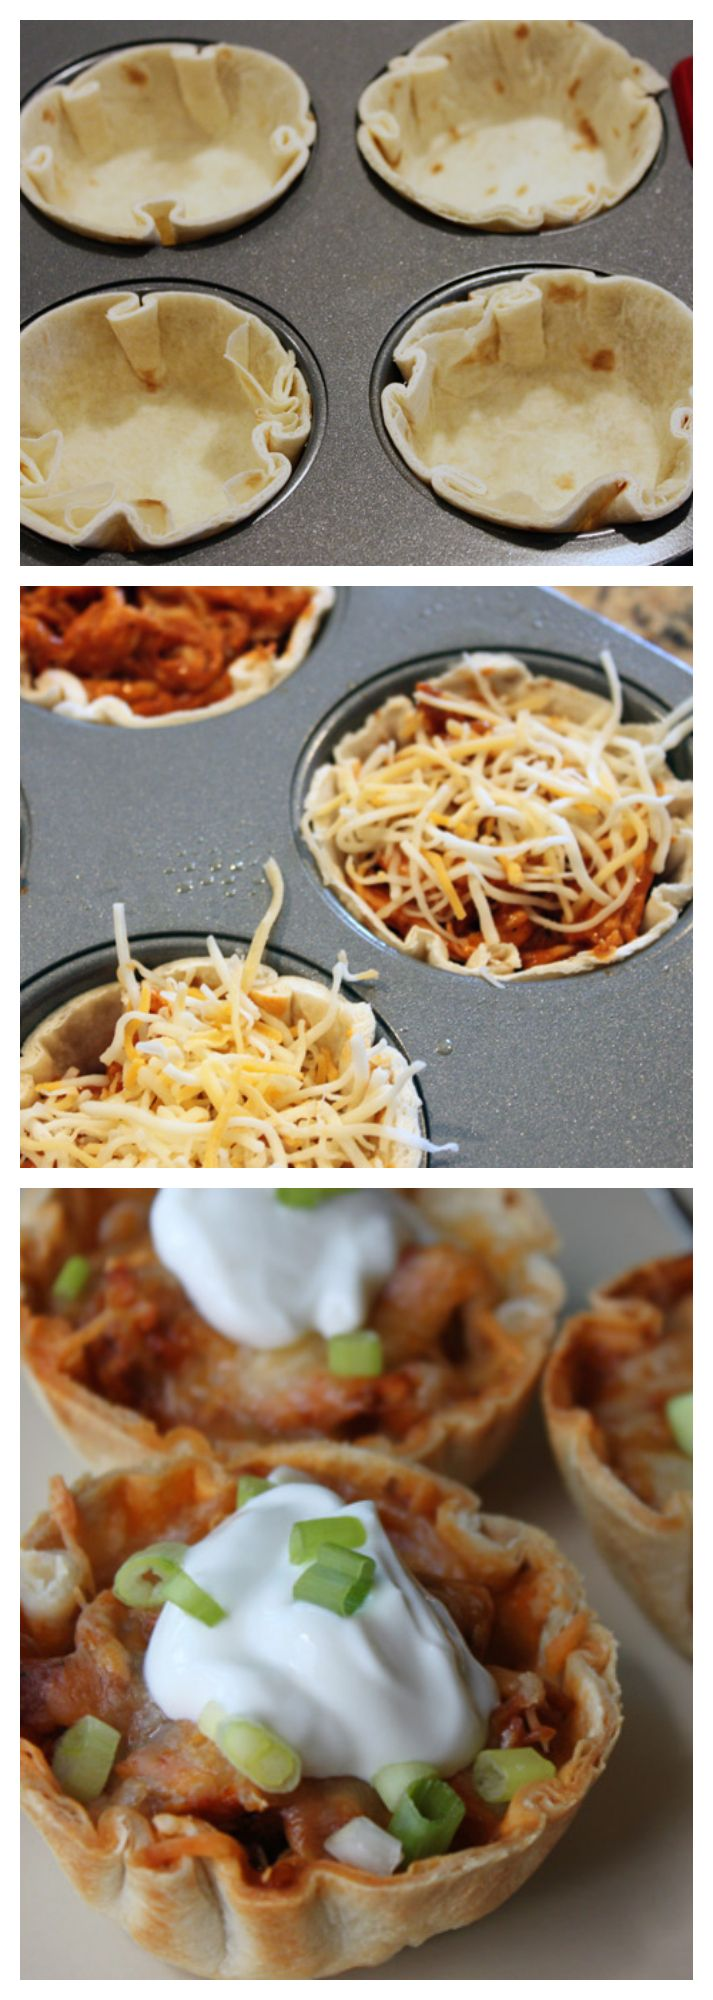 #HowTo: Easy-to-Eat Chicken Enchilada Cups